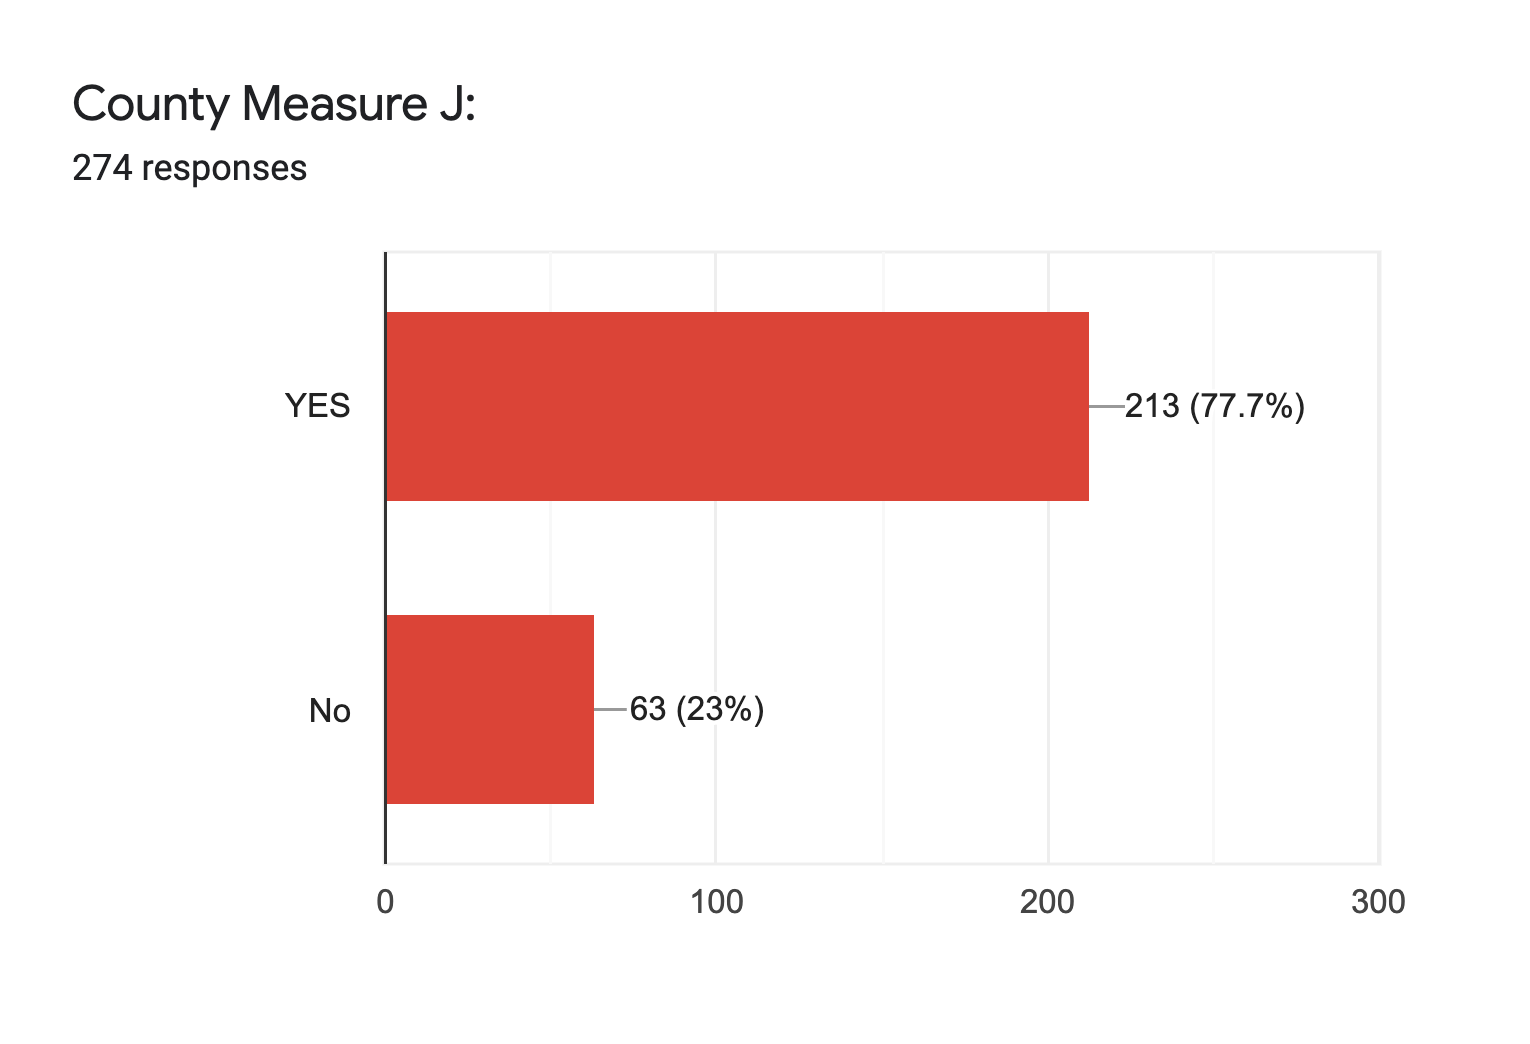 Forms response chart. Question title: County Measure J:. Number of responses: 274 responses.